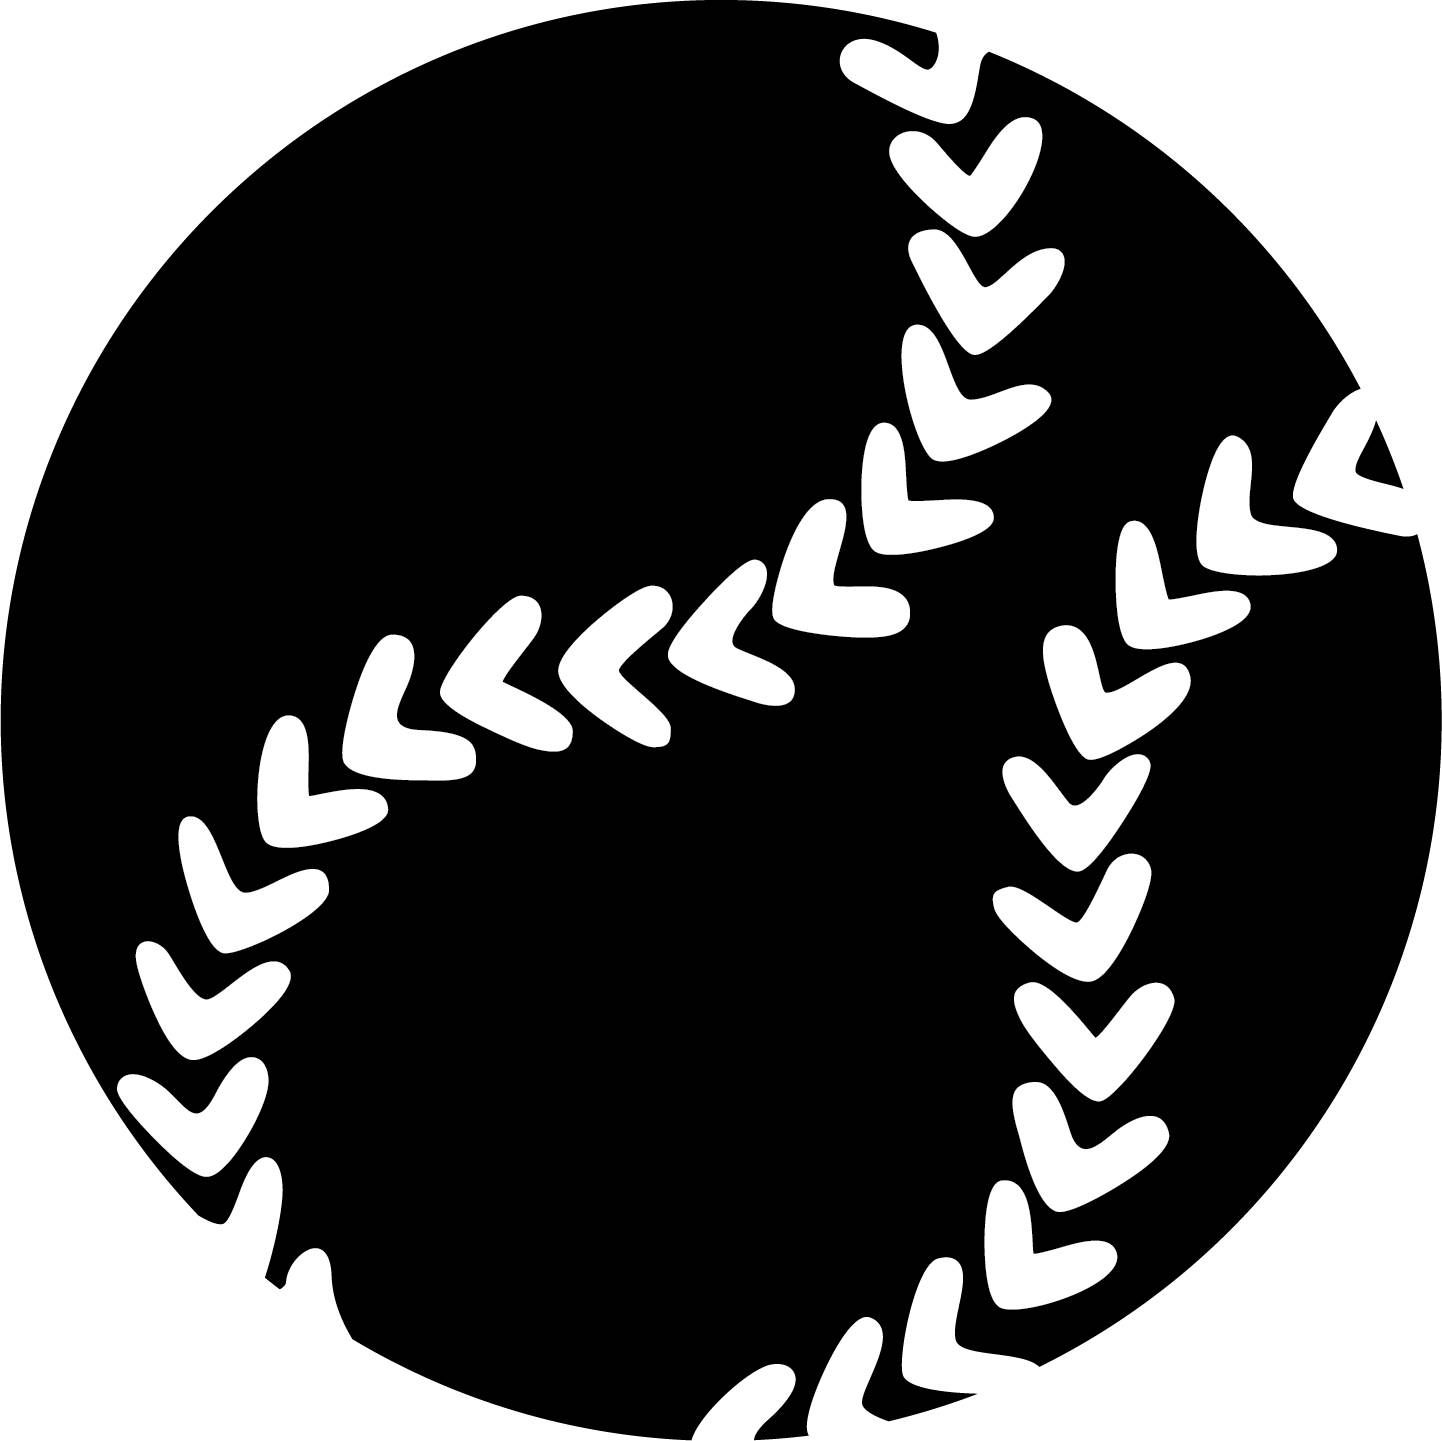 small resolution of softball ai eps jpg png and svg clipart vinyl stencil cricut silhouette cameo by riasdigitaldesigns on etsy